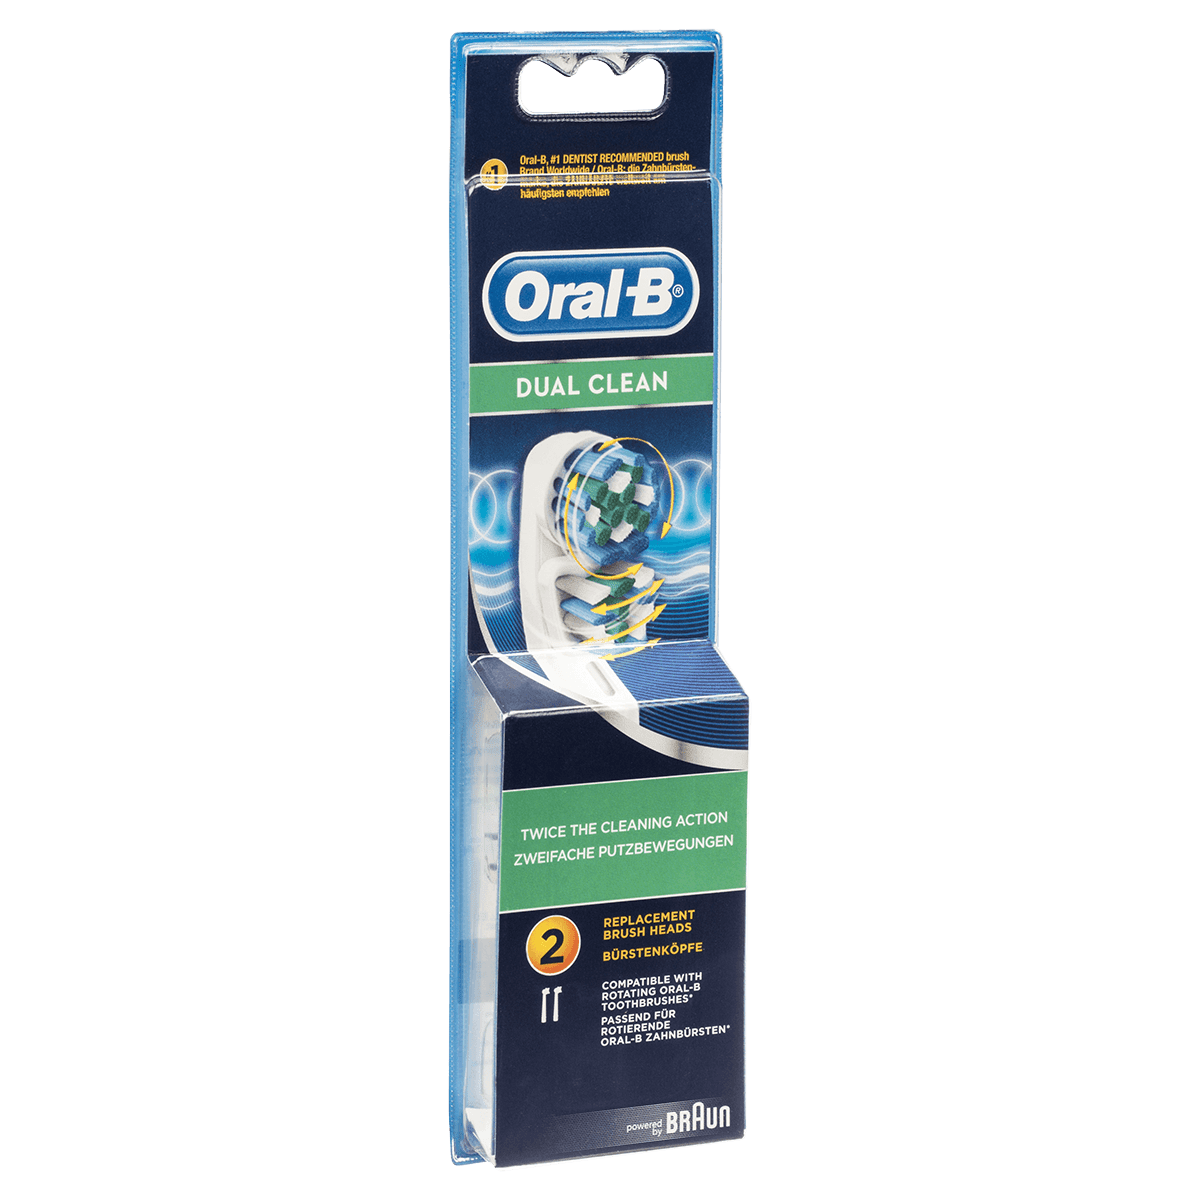 Braun Oral-B Dual Clean Replacement Brush Heads